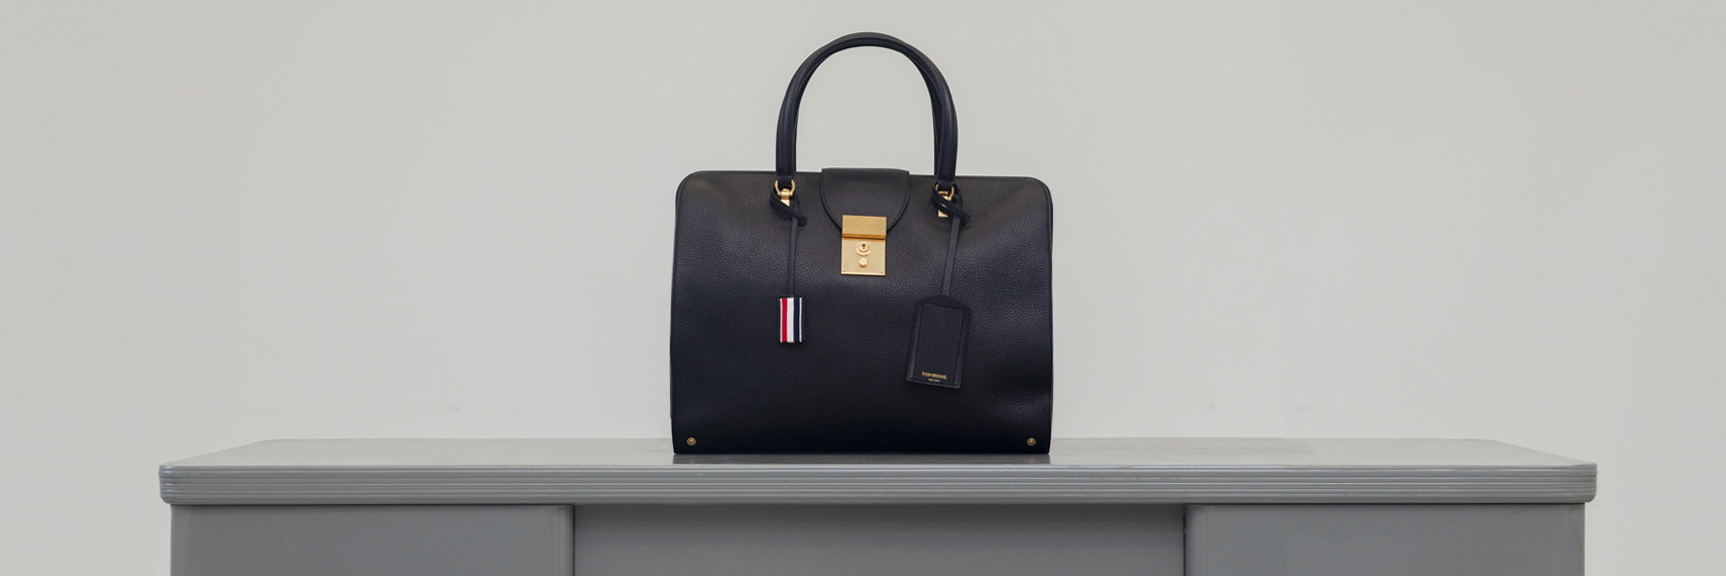 Shop Thom Browne Handbags and Leather Goods